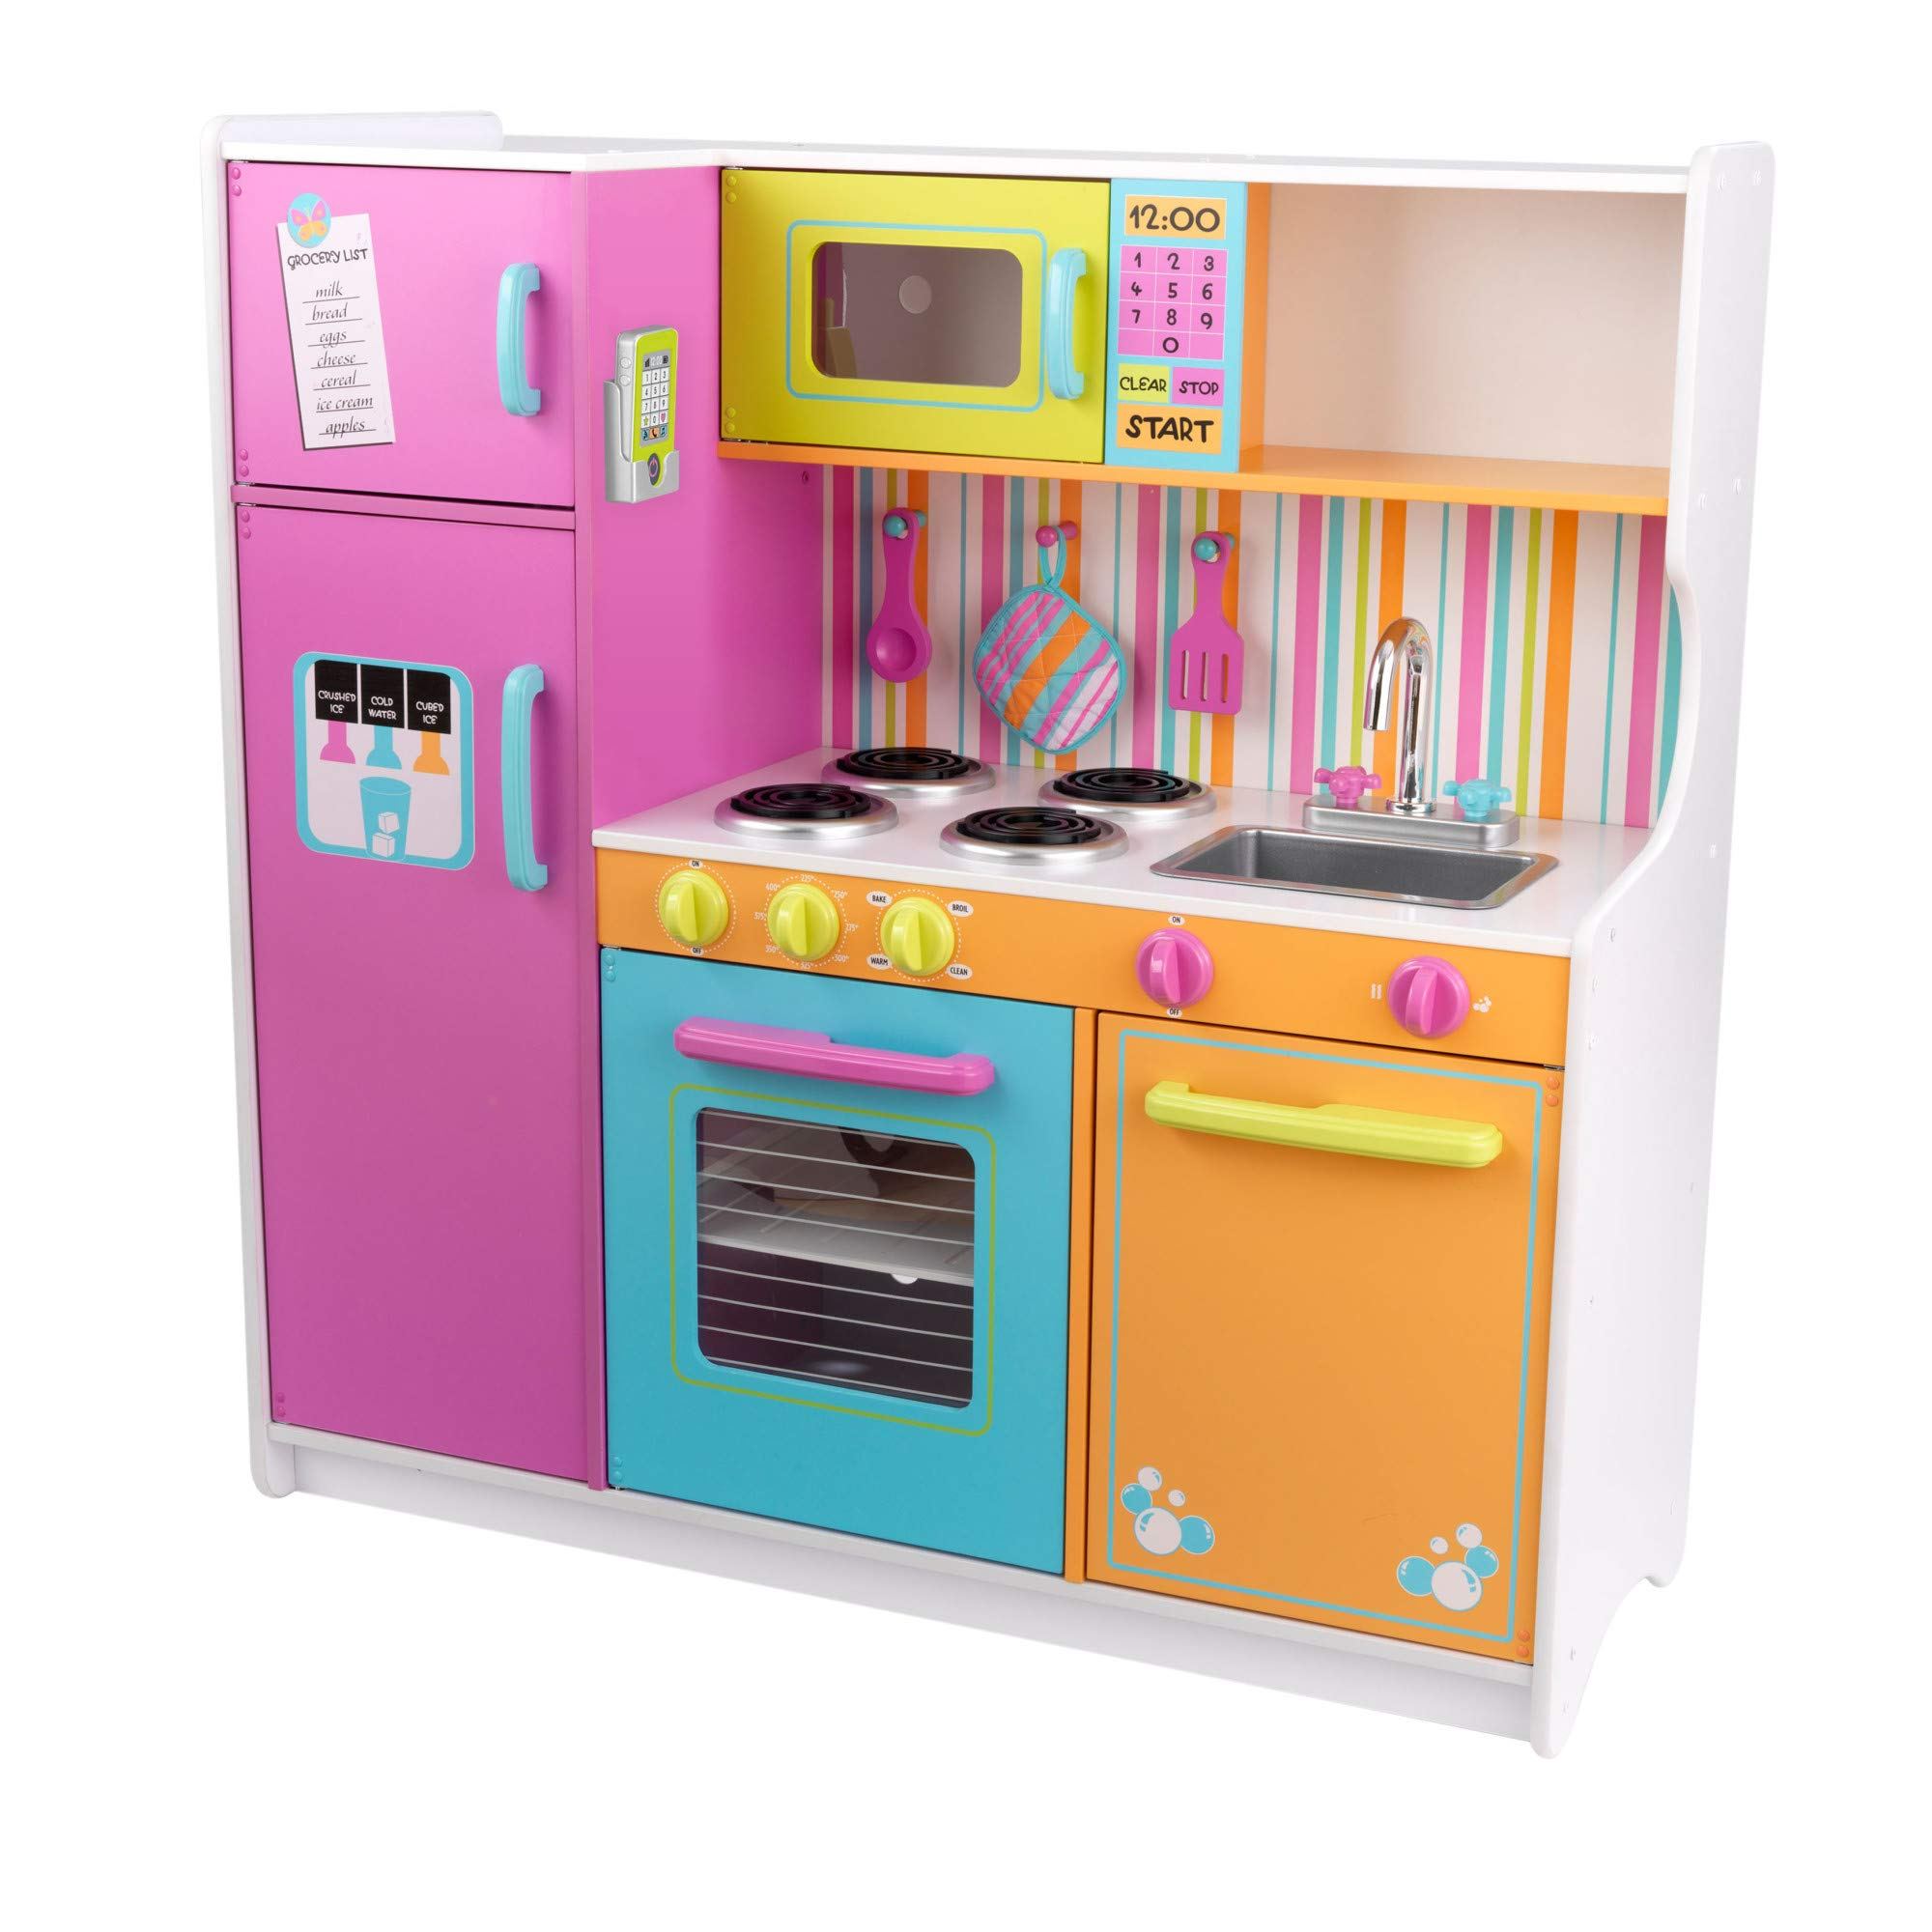 KidKraft Deluxe Big and Bright Wooden Play Kitchen with Play Phone, Click & Turn Knobs and Neon Colors ,Gift for Ages 3+